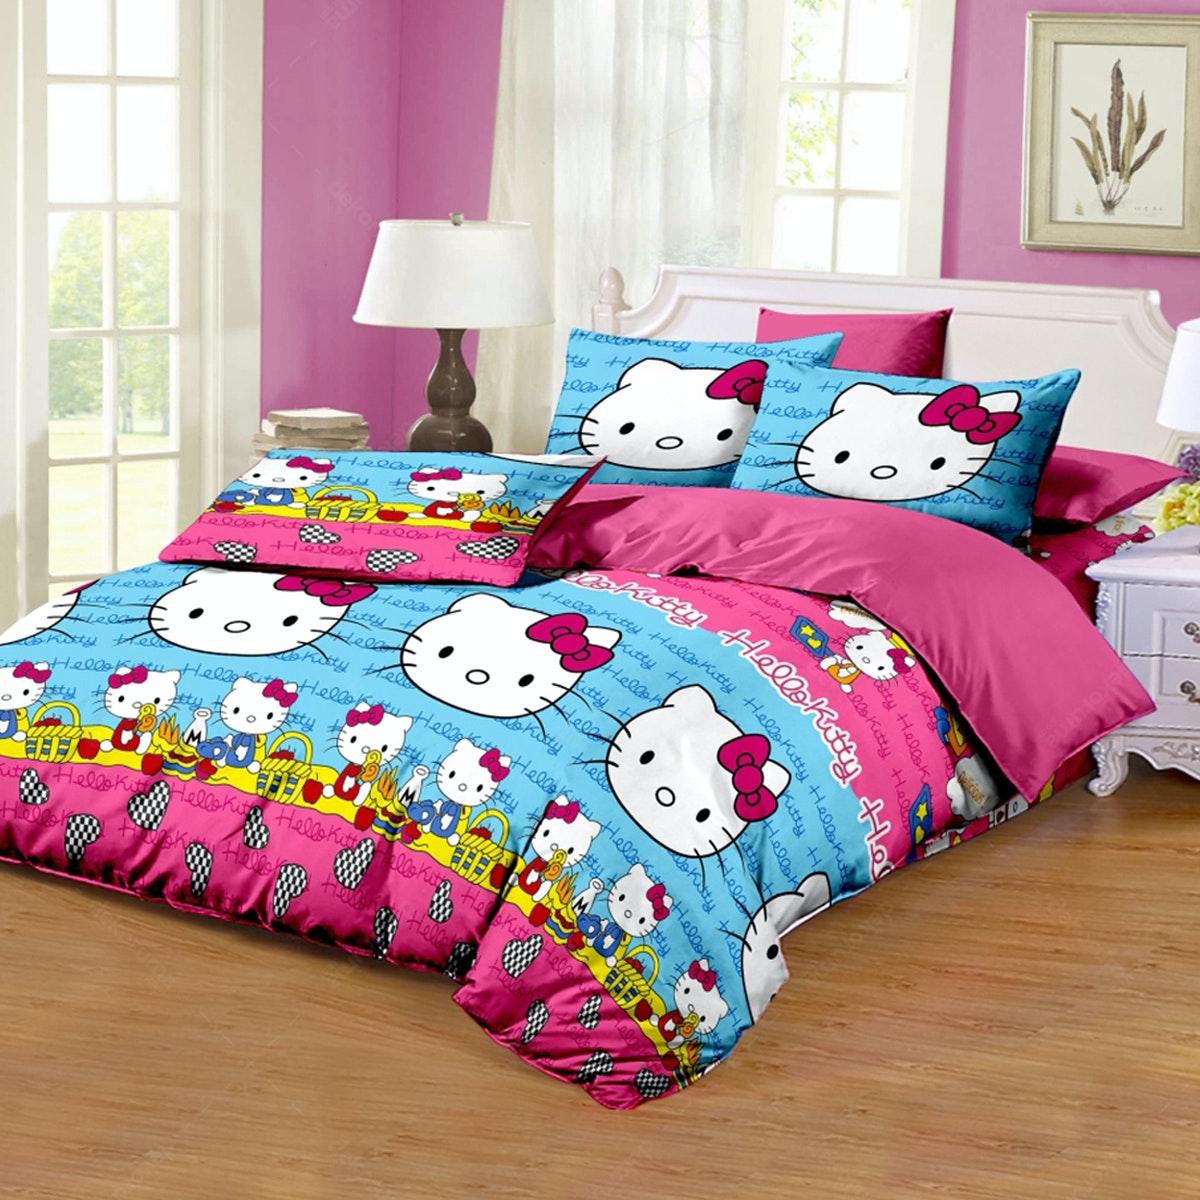 Pesona Disperse Sprei Kitty Blue Uk 120x200x20cm